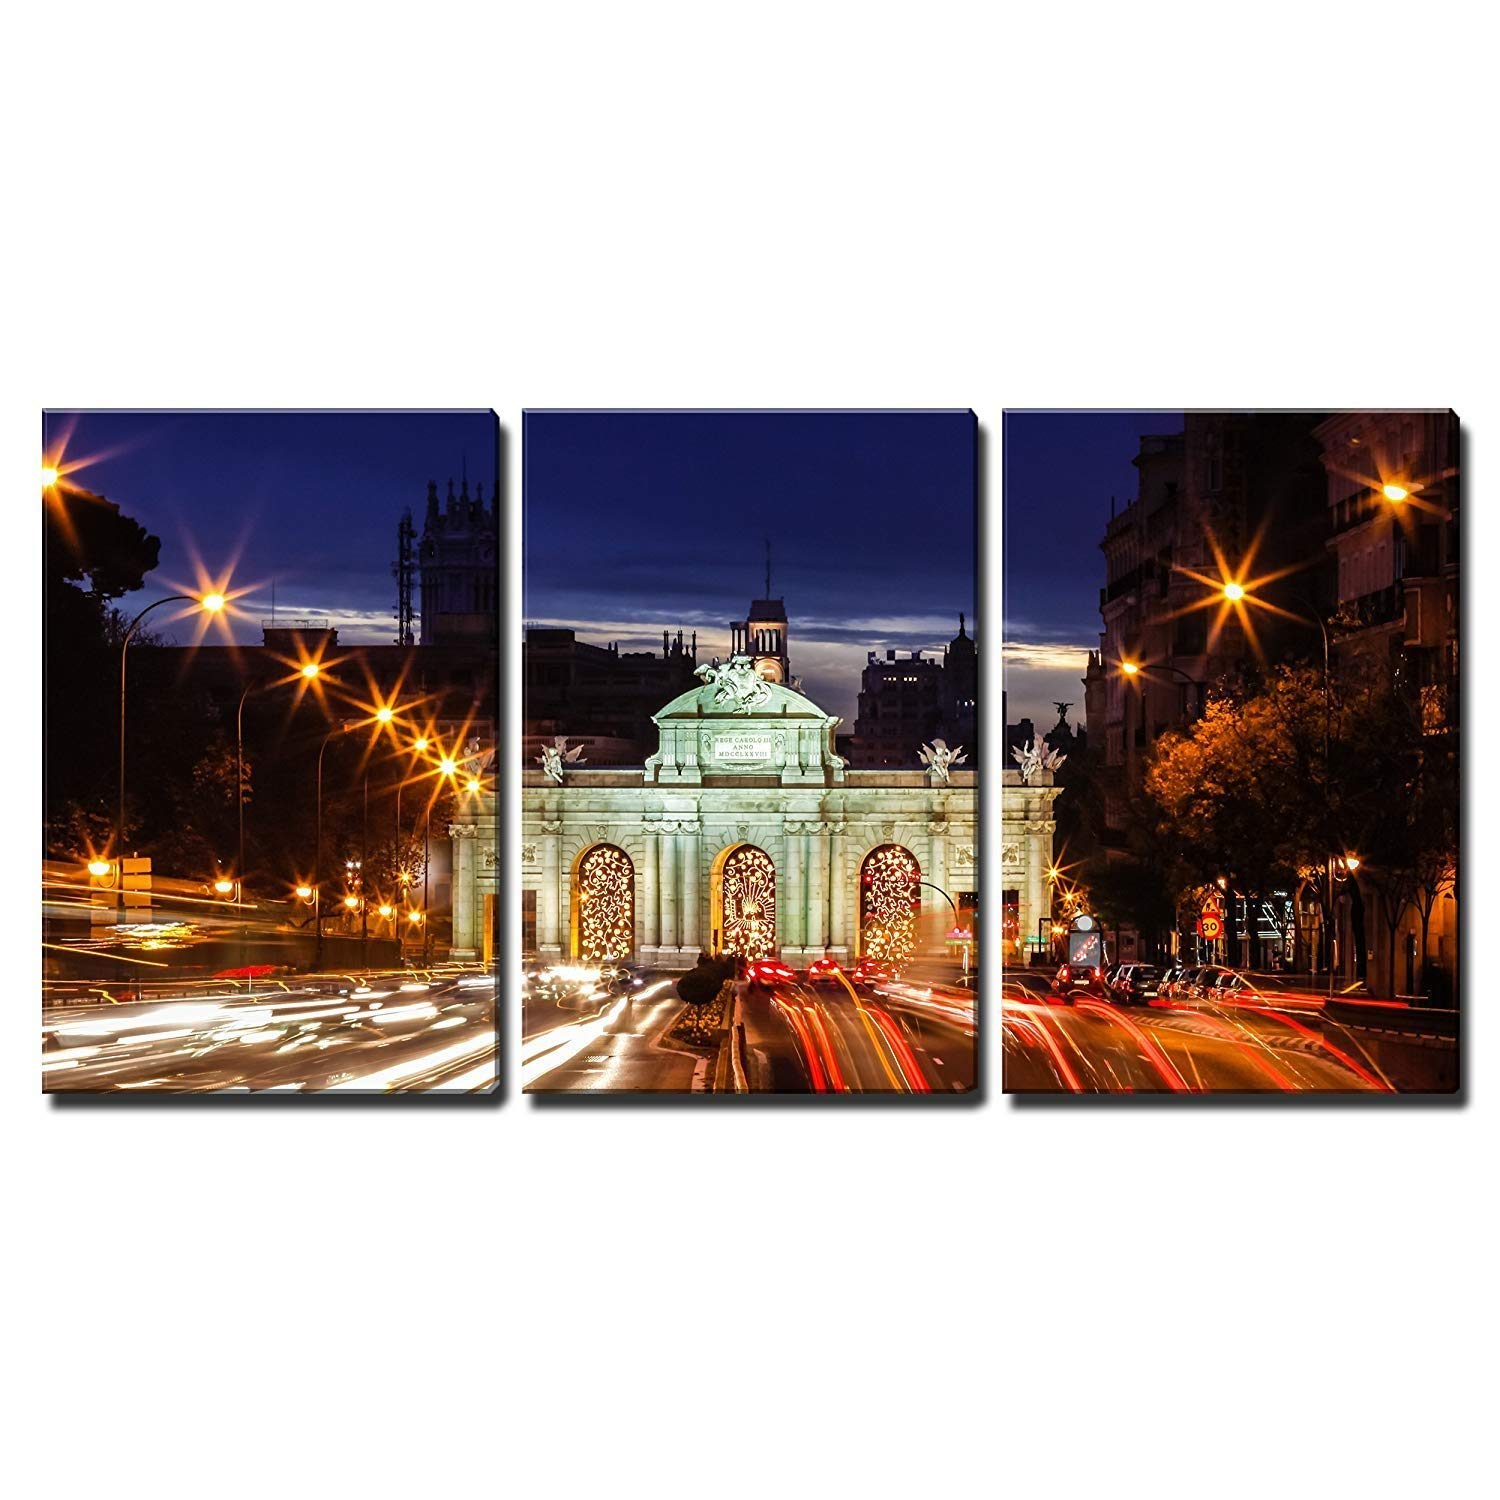 "wall26 - 3 Piece Canvas Wall Art - Monument in The Plaza De La Independencia Independence Square in Madrid, Spain - Modern Home Decor Stretched and Framed Ready to Hang - 24""x36""x3 Panels"